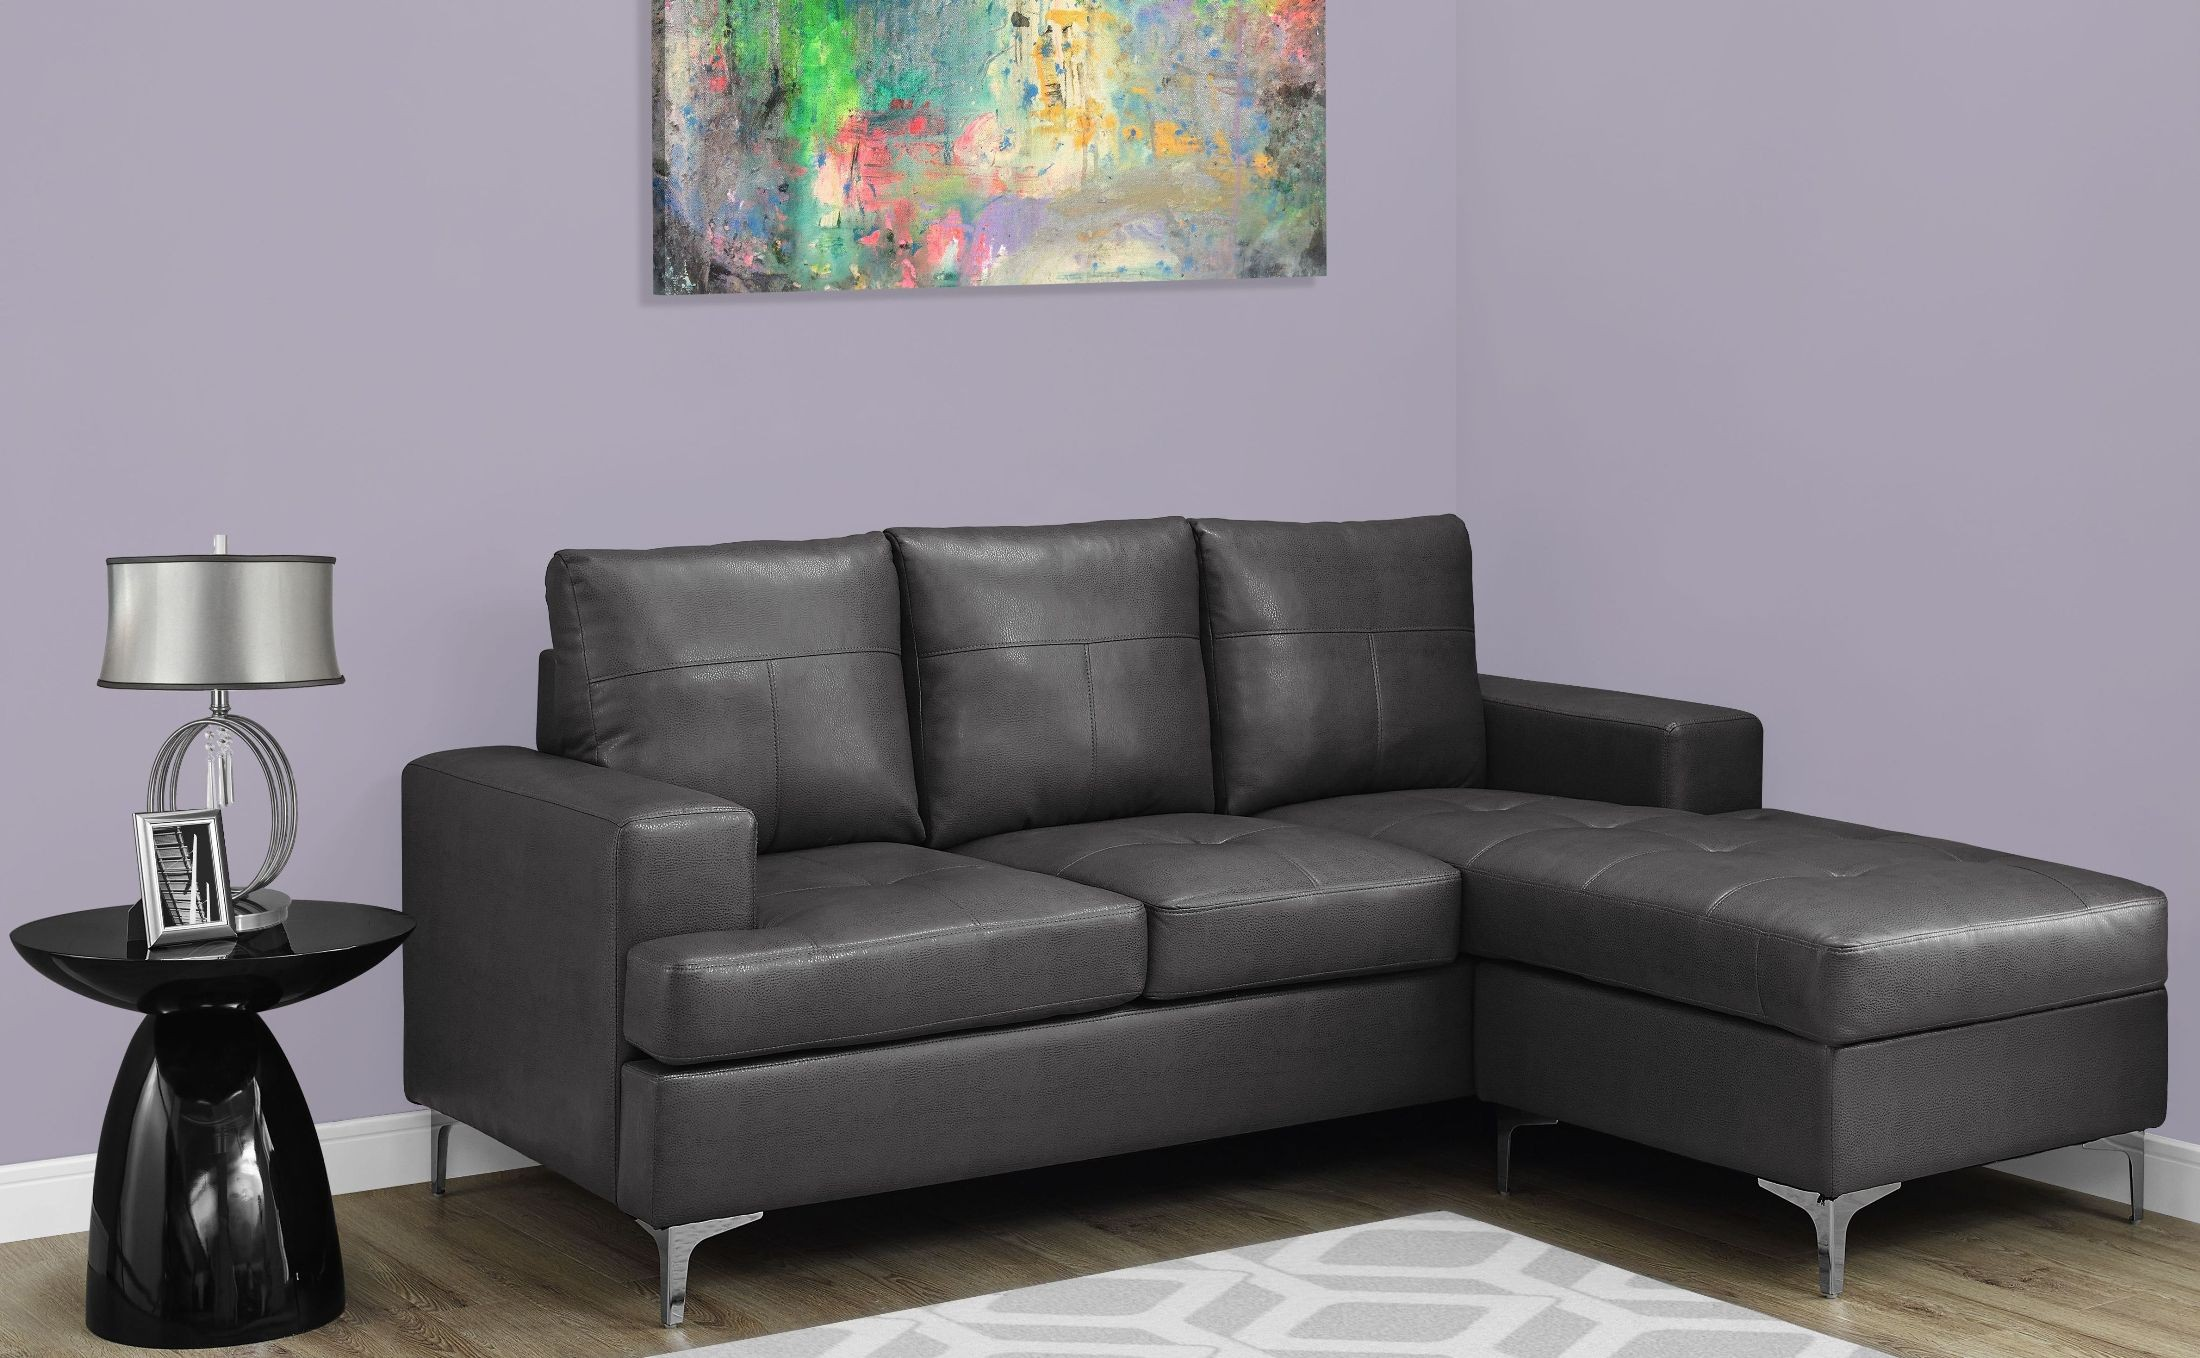 charcoal gray bonded leather sofa lounger from monarch coleman furniture. Black Bedroom Furniture Sets. Home Design Ideas